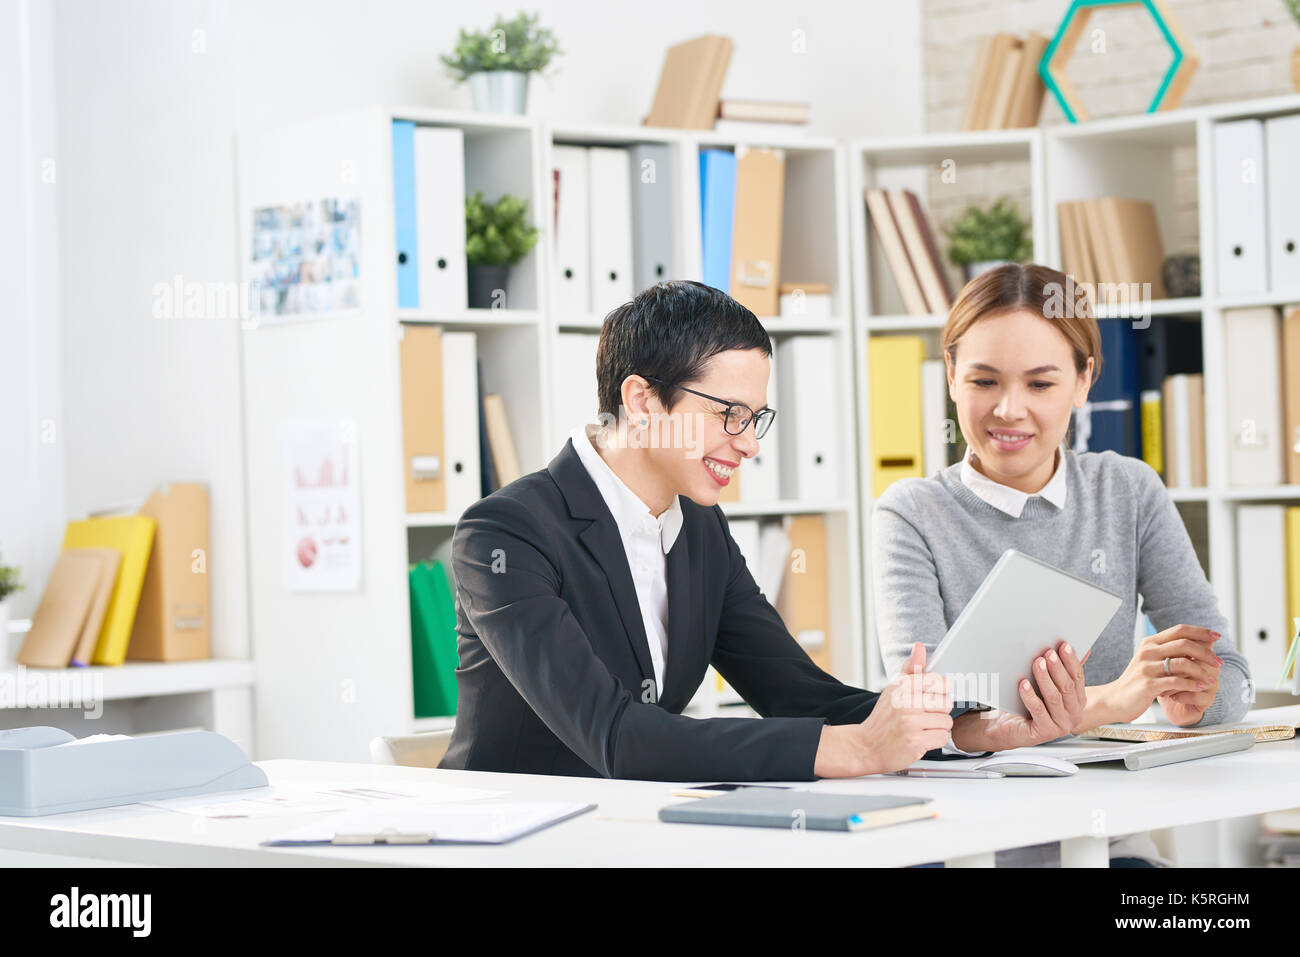 Joyful managers in formalwear gathered together at modern open plan office and making presentation with help of digital tablet - Stock Image